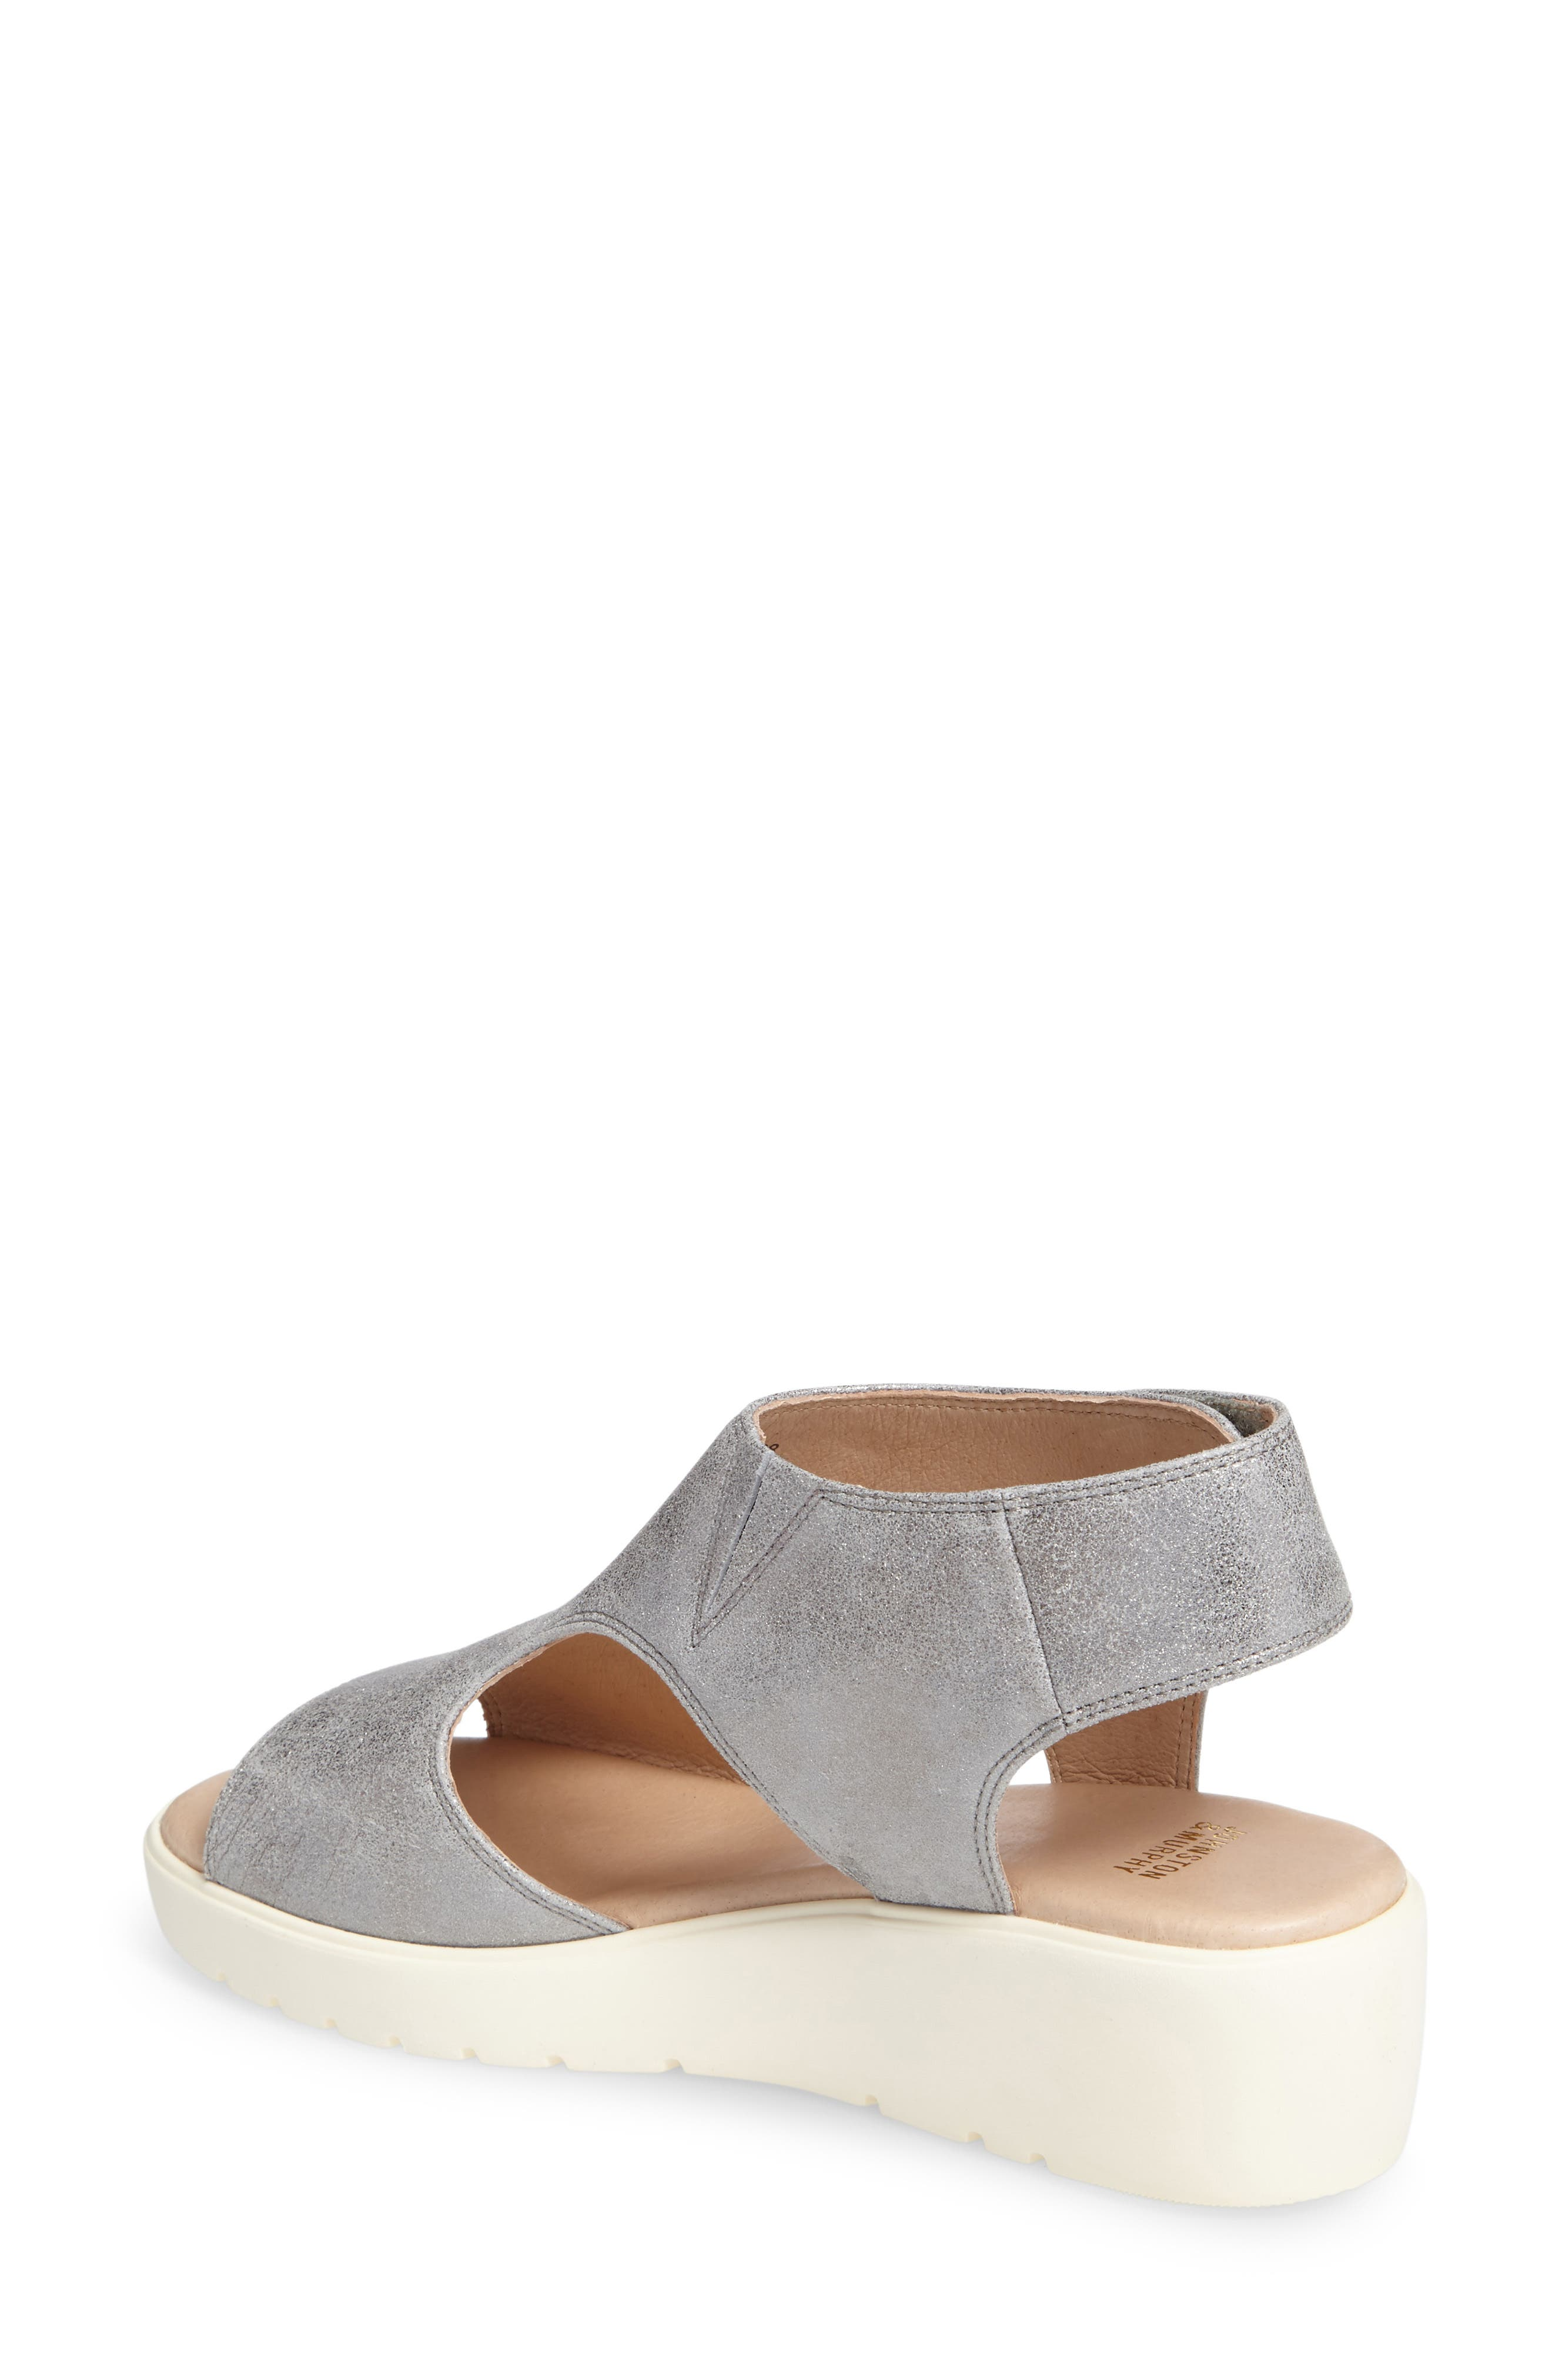 Camilla Slingback Wedge Sandal,                             Alternate thumbnail 2, color,                             SILVER METALLIC SUEDE